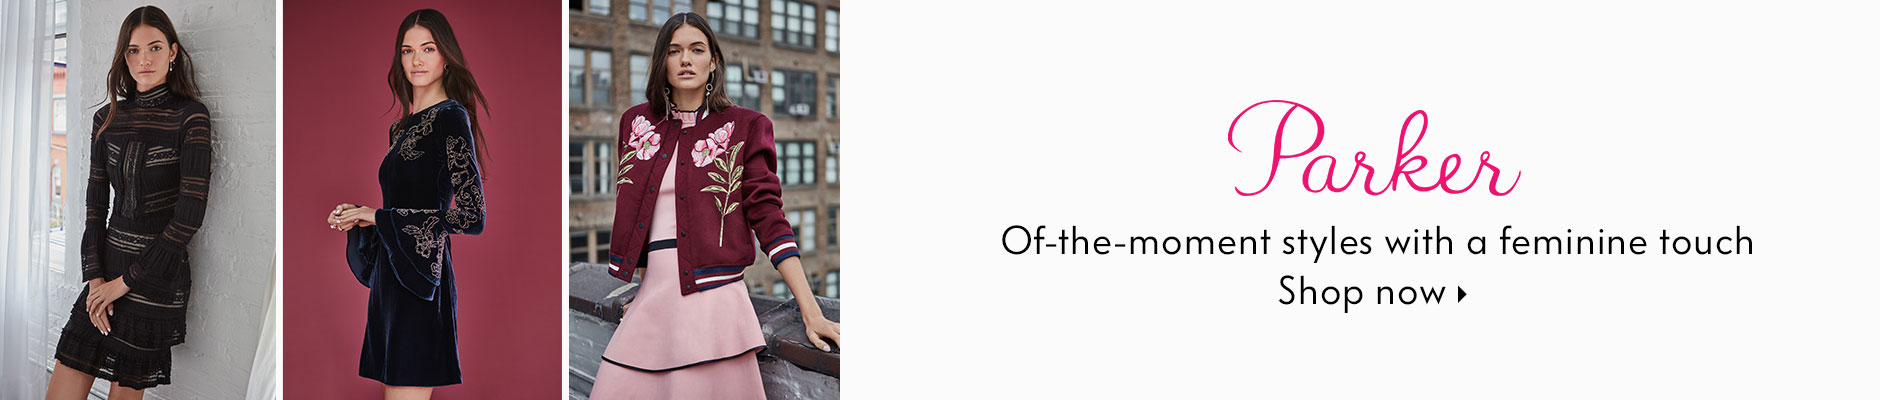 Parker - ot-the-moment styles with a feminine touch - shop now